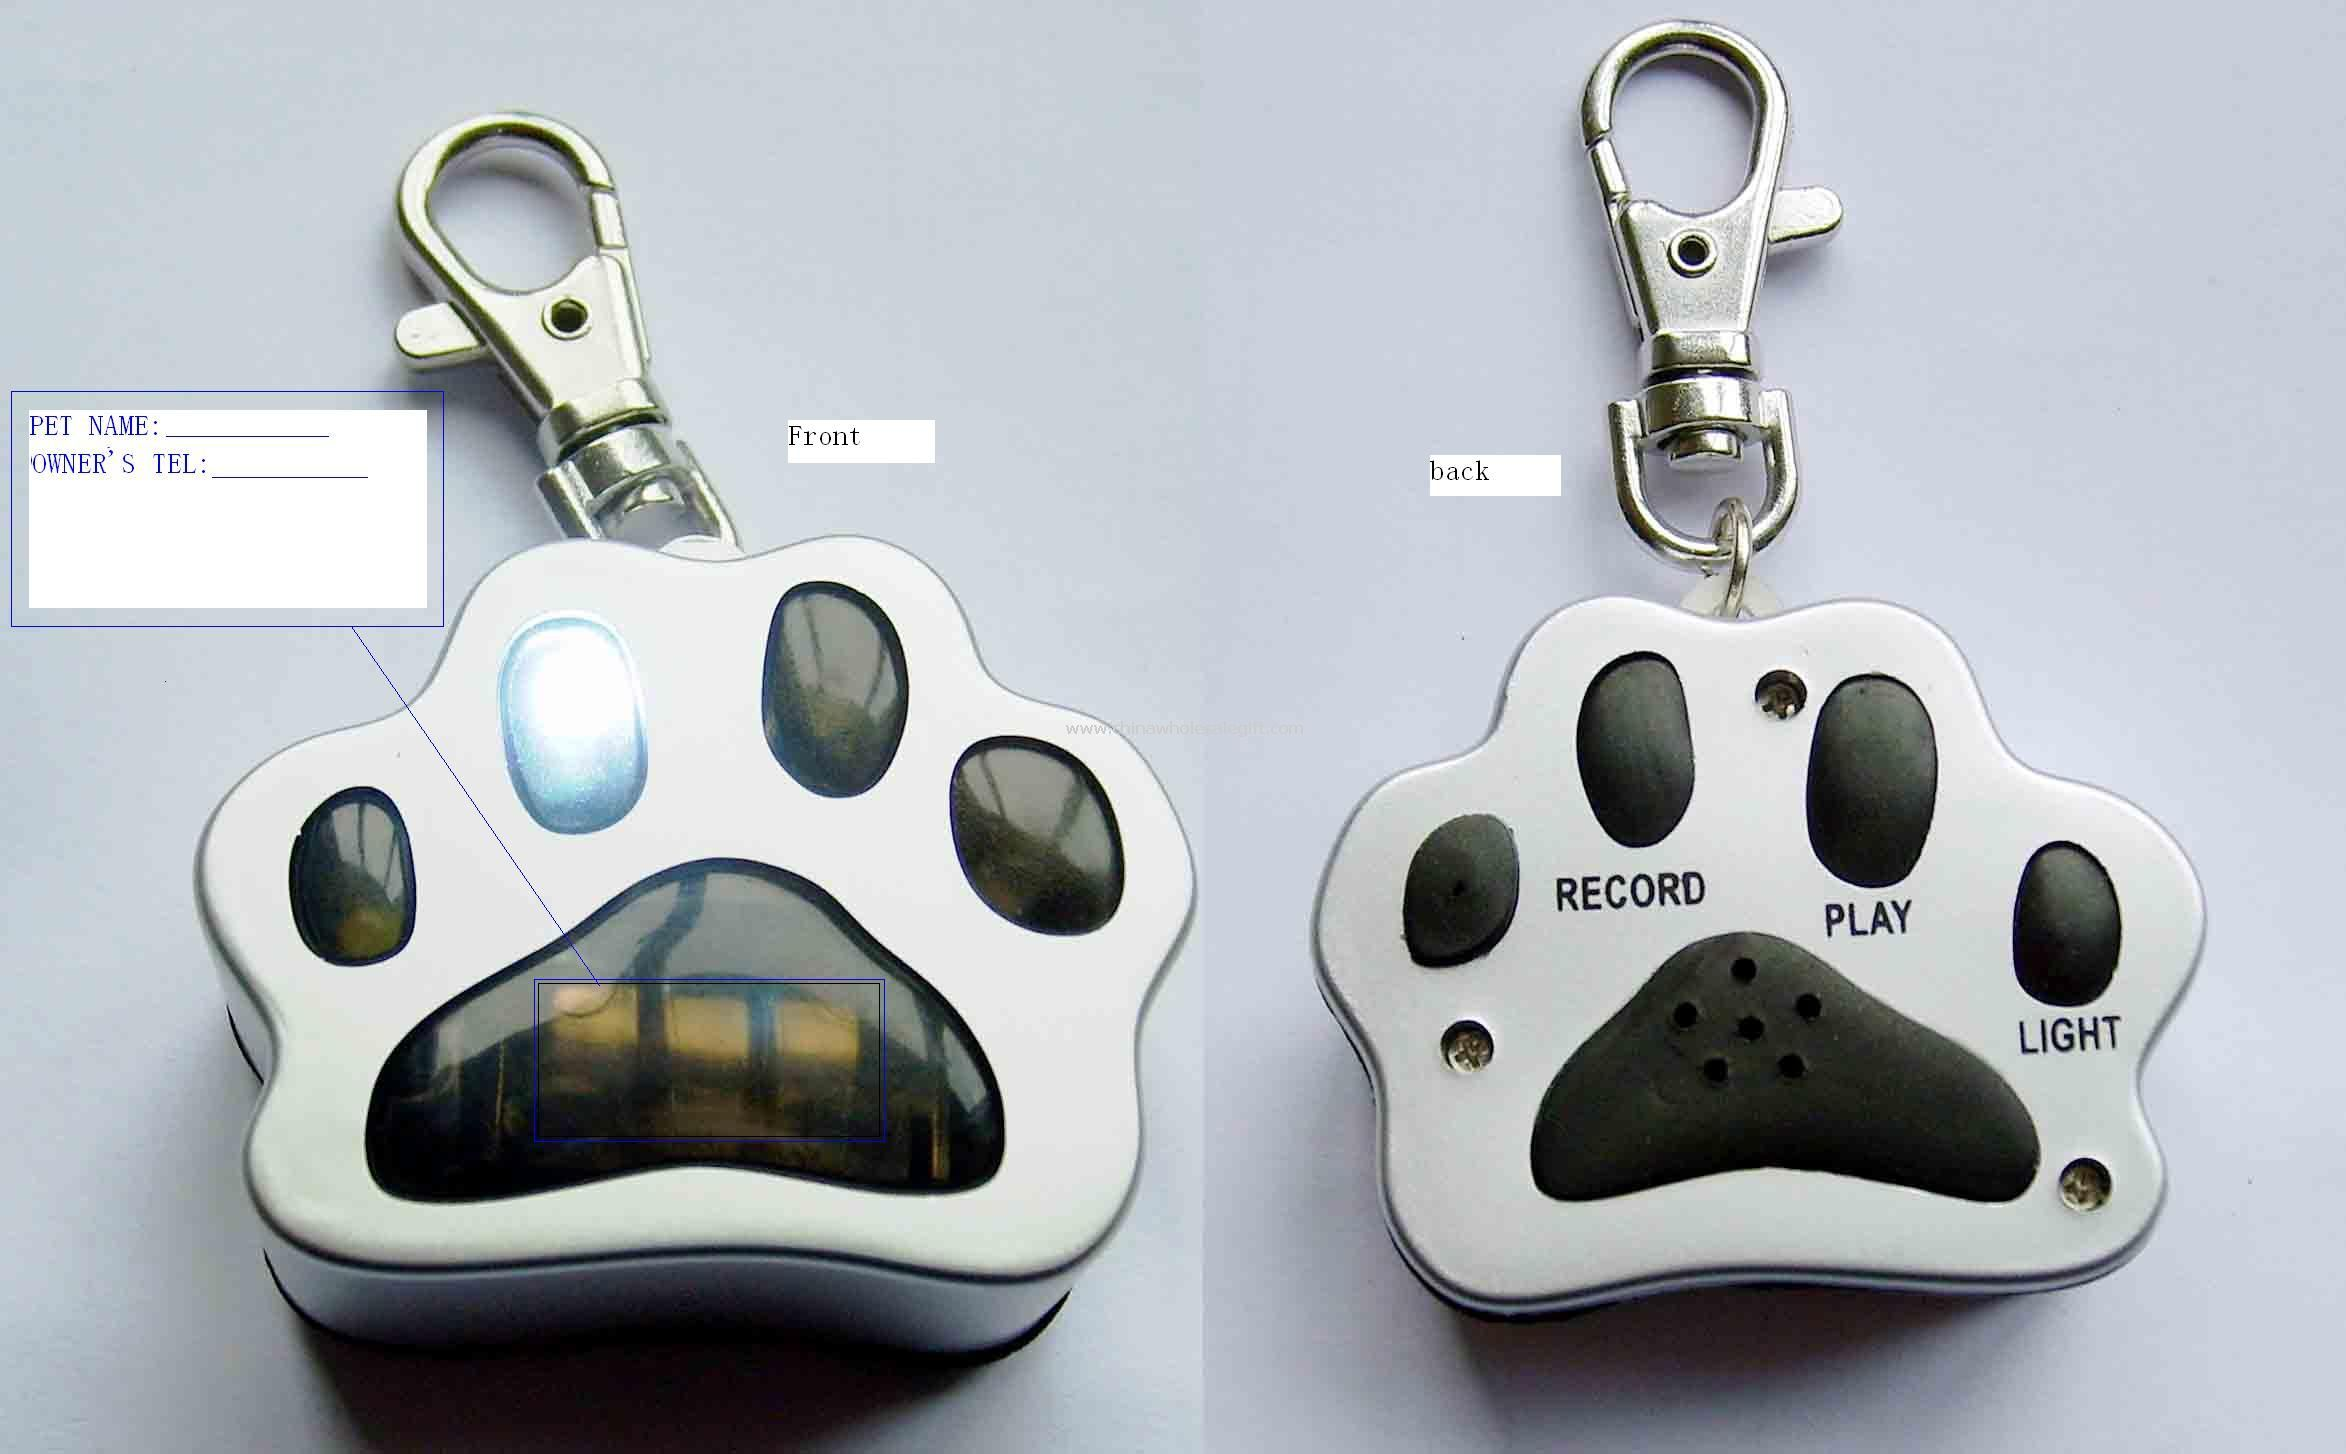 PET TAG FLASHER & RECORDER